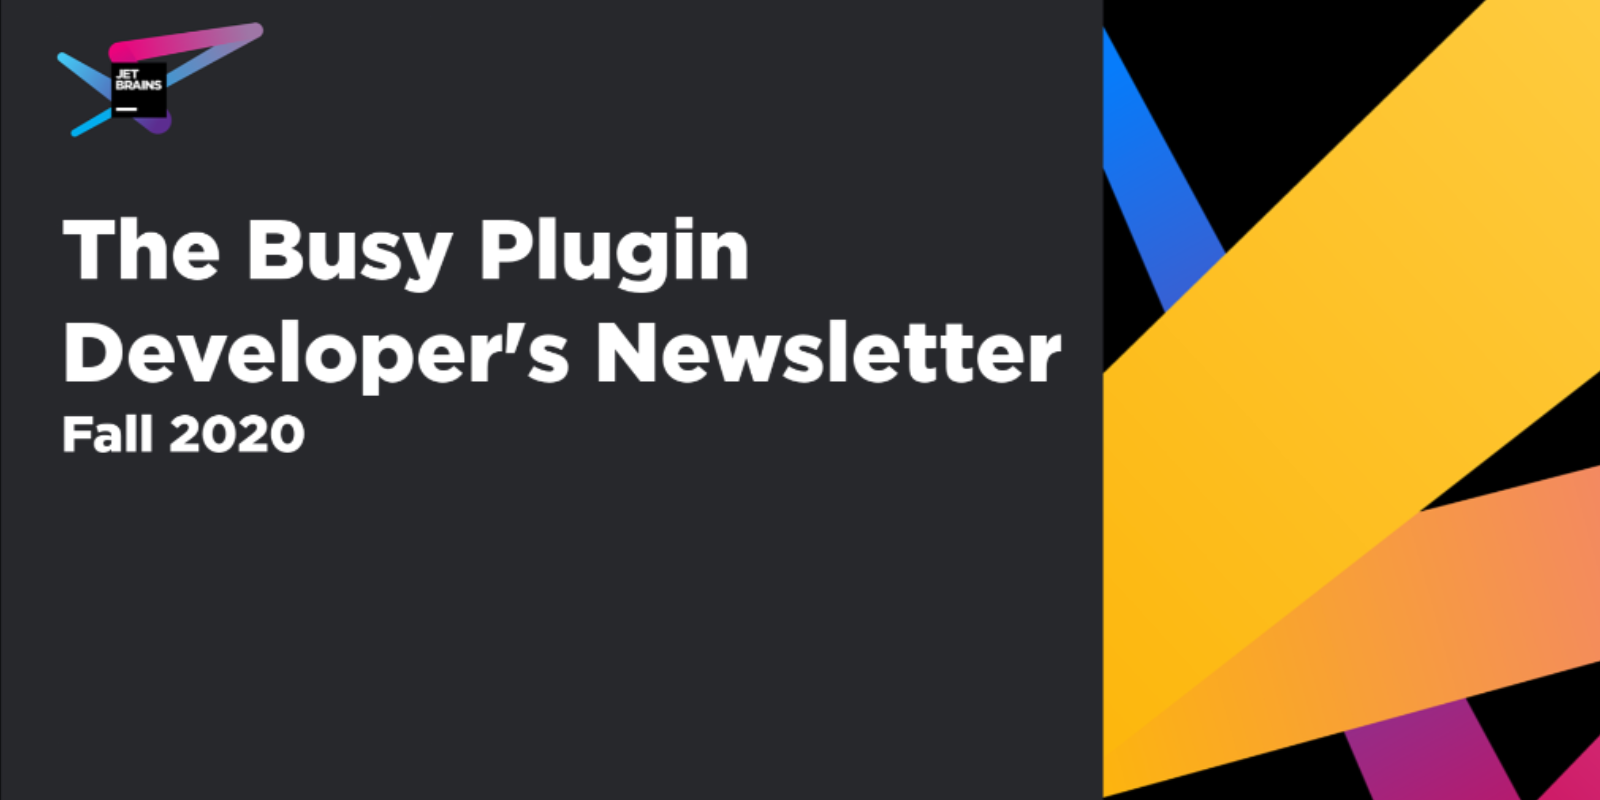 The Busy Plugin Developer's Newsletter - Fall 2020